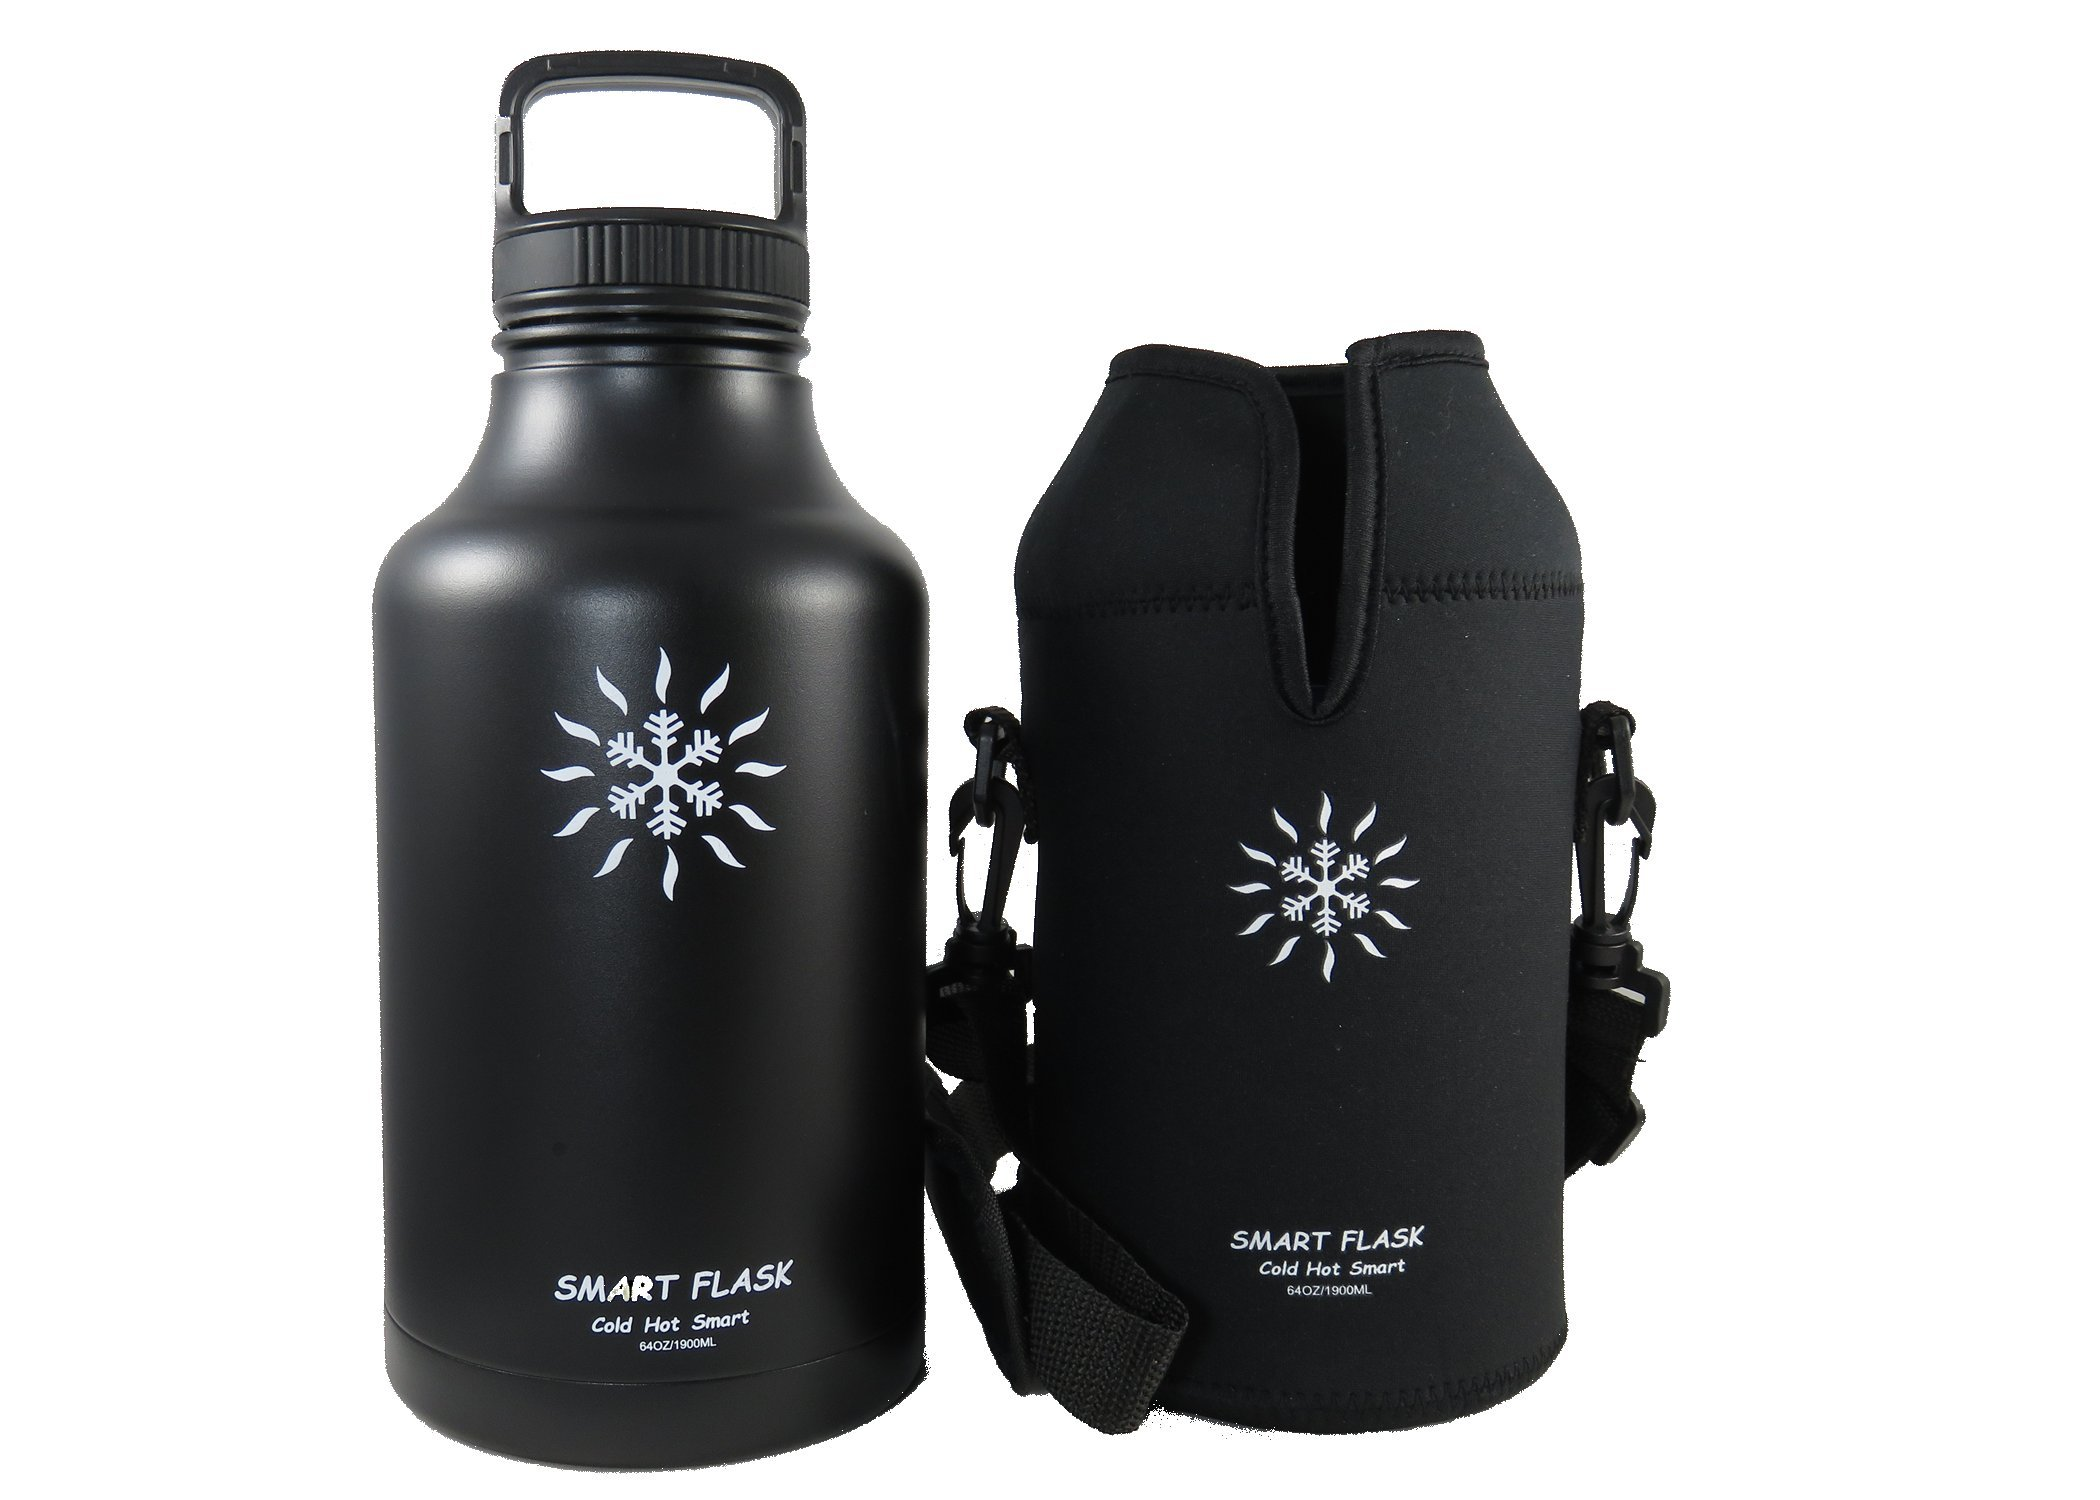 Smart Flask 64oz Beer growler (Midnight Black)